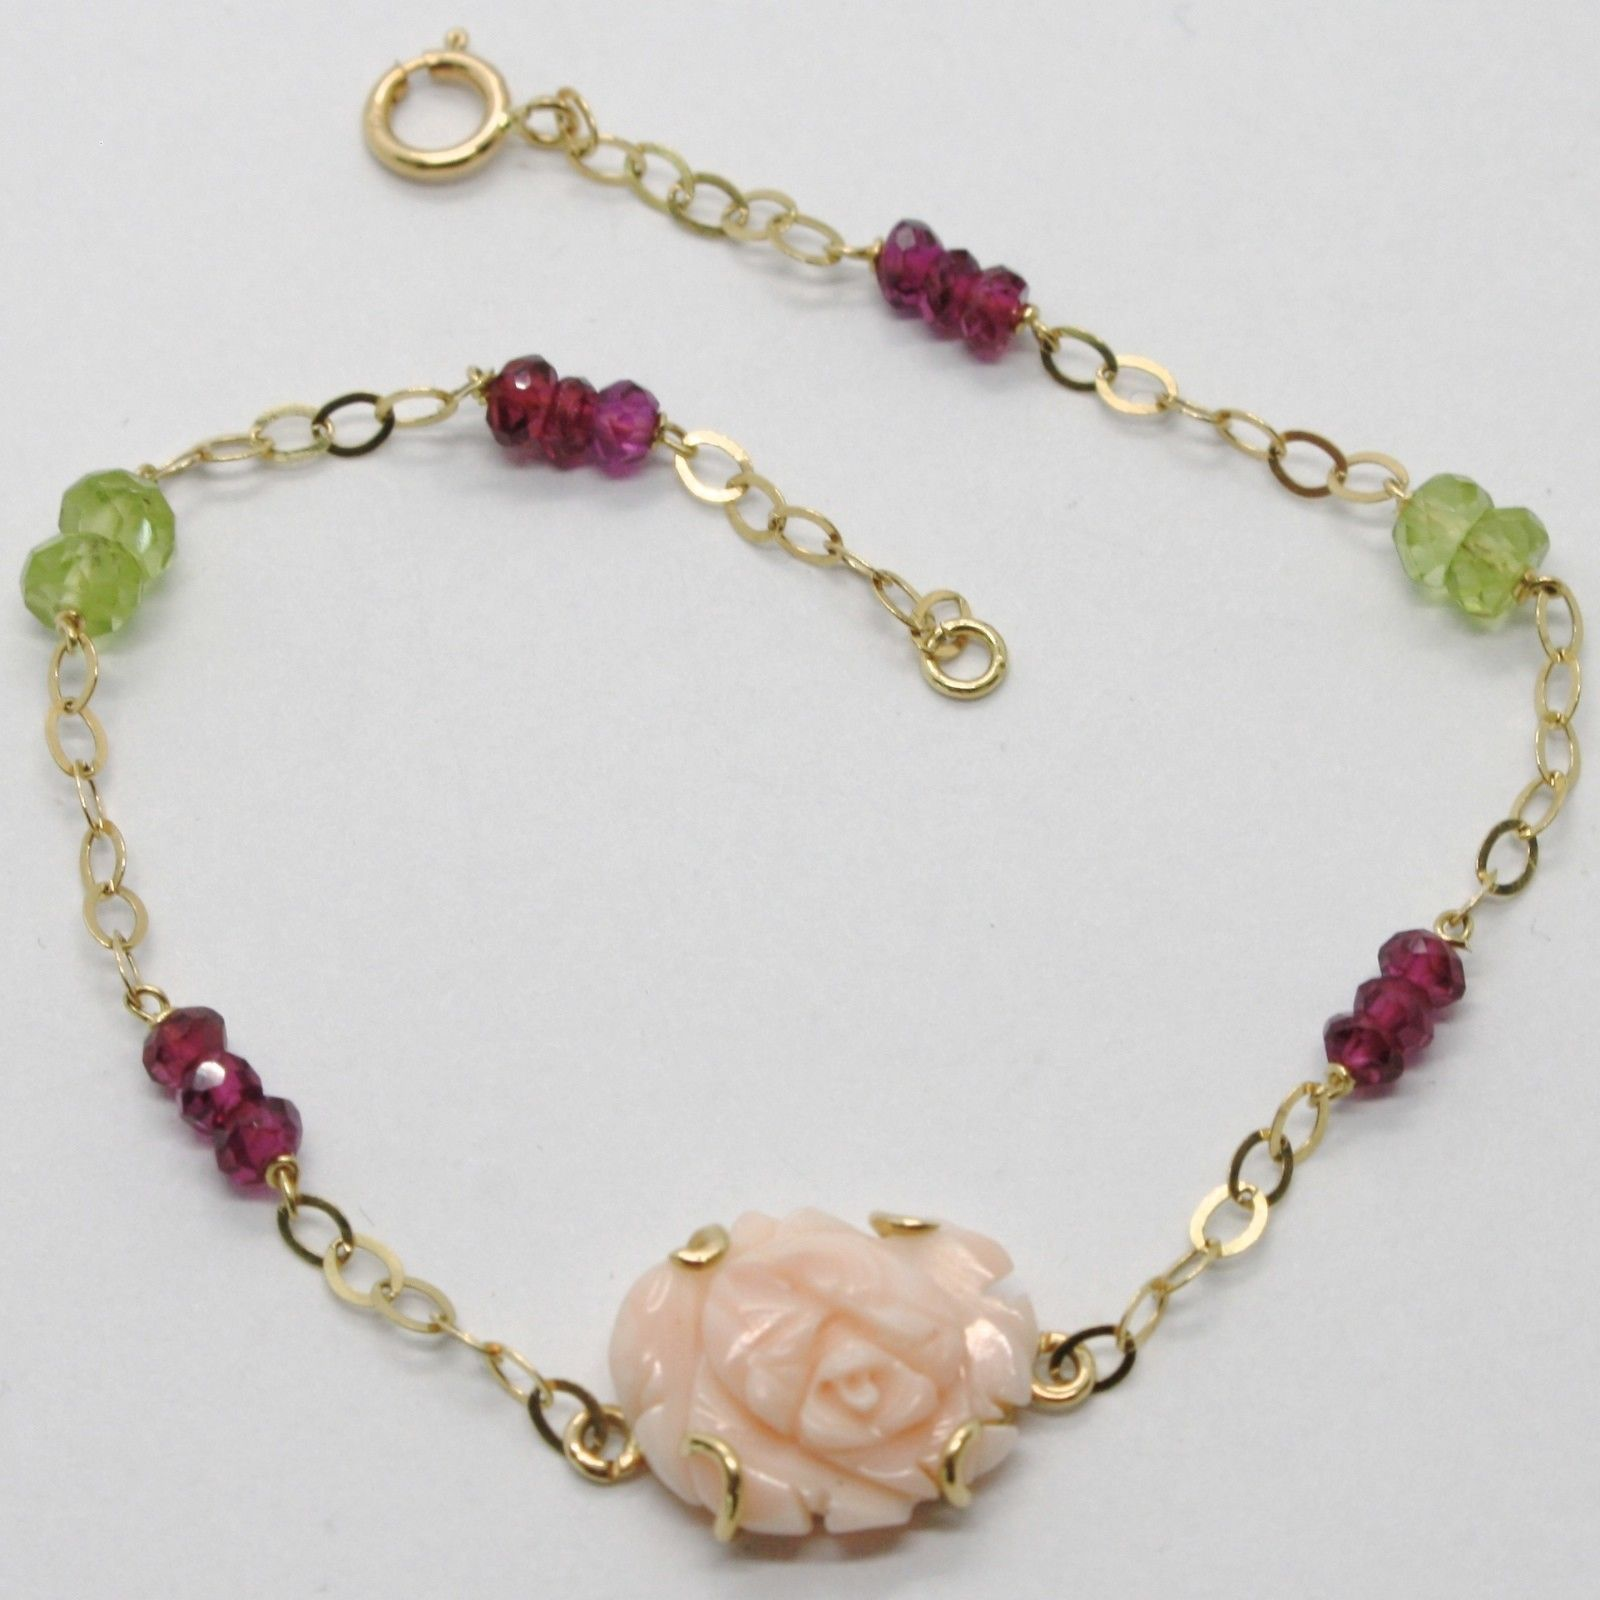 ARMBAND GELBGOLD 18K 750 KORALLE PINK PERIDOT-GRÜN RHODONIT MADE IN ITALY